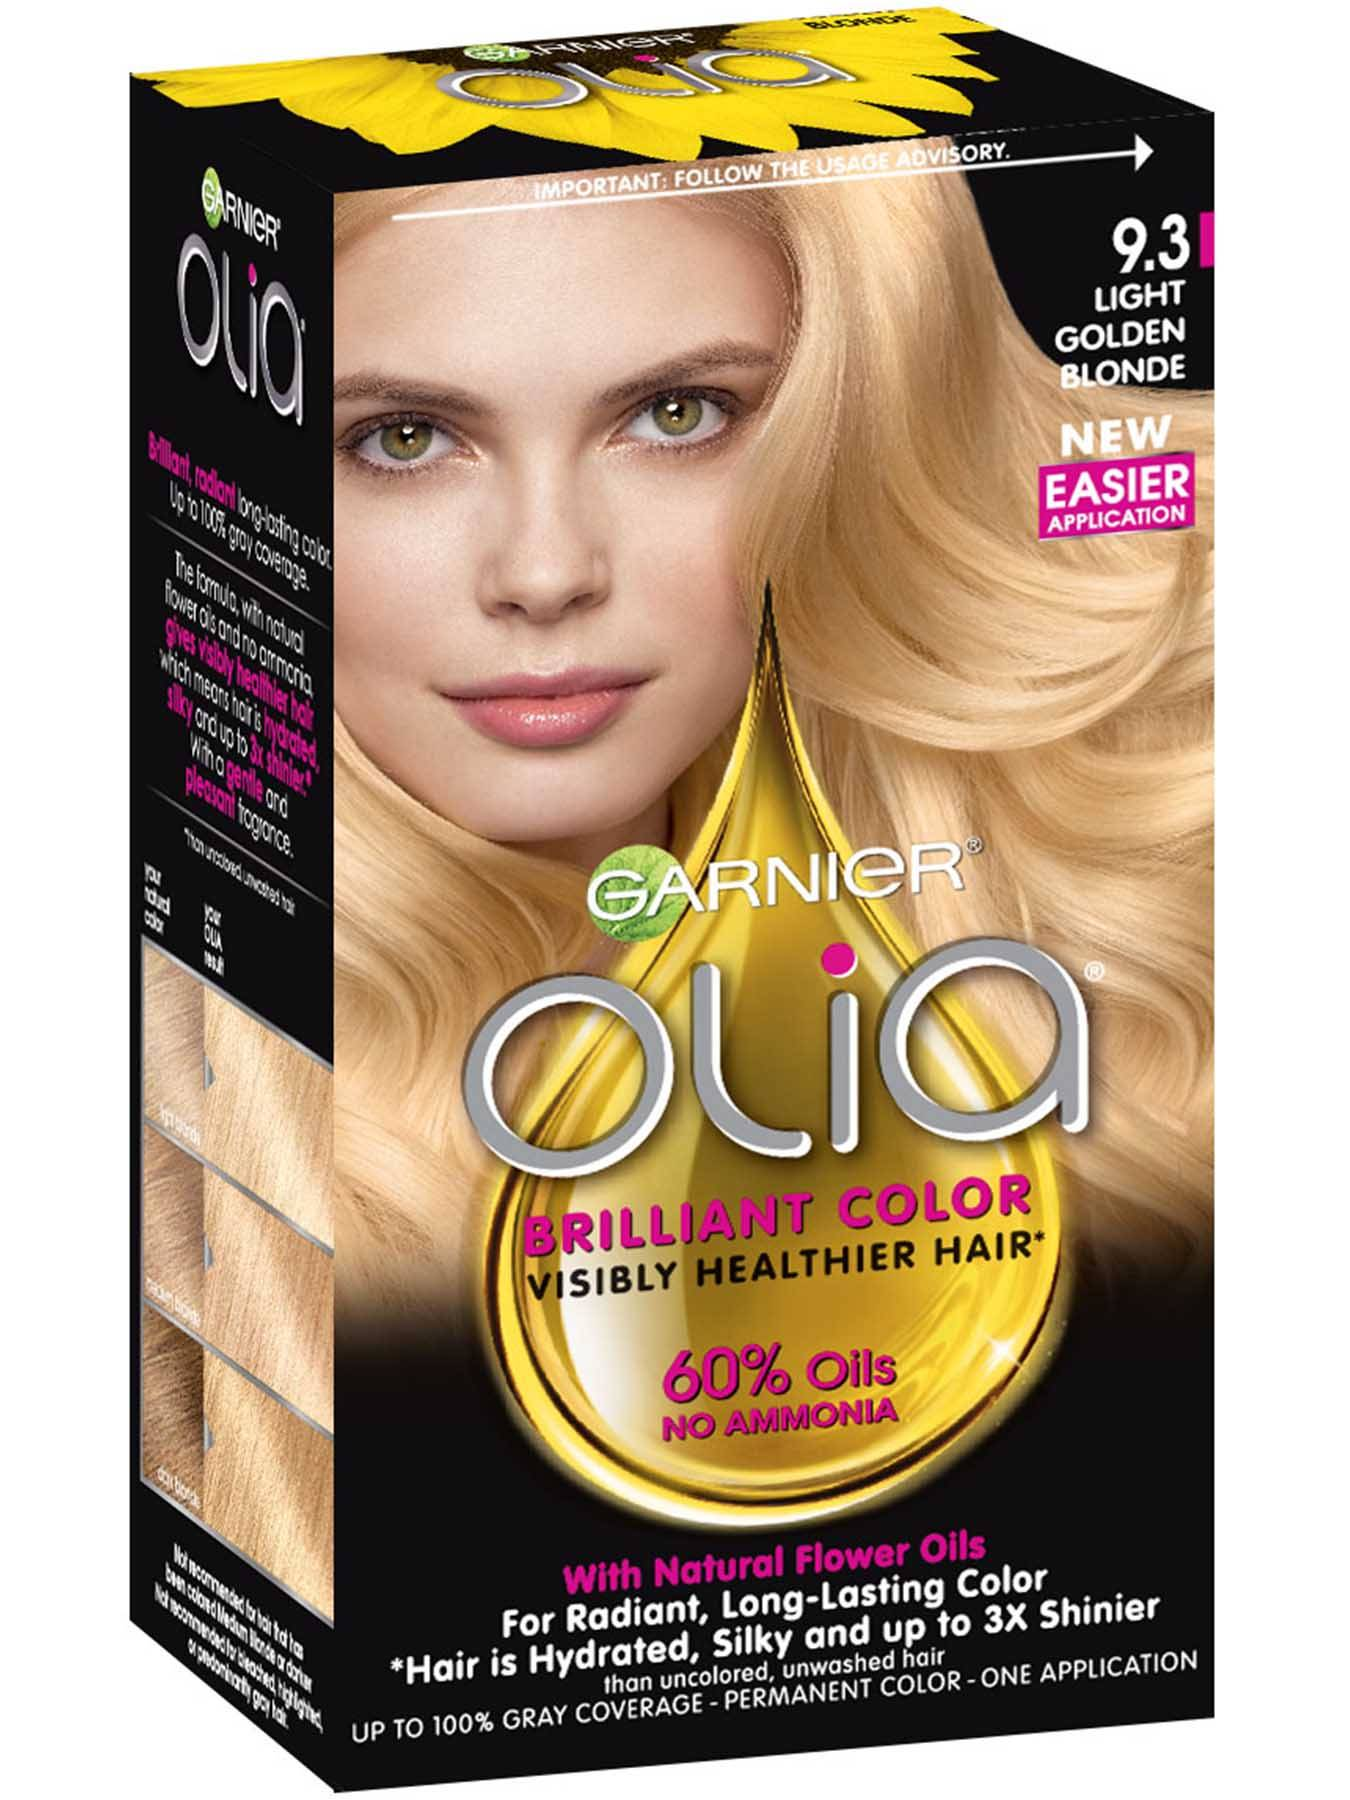 Garnier Olia 9.3 - Light Golden Blonde - Powered Permanent Hair Color